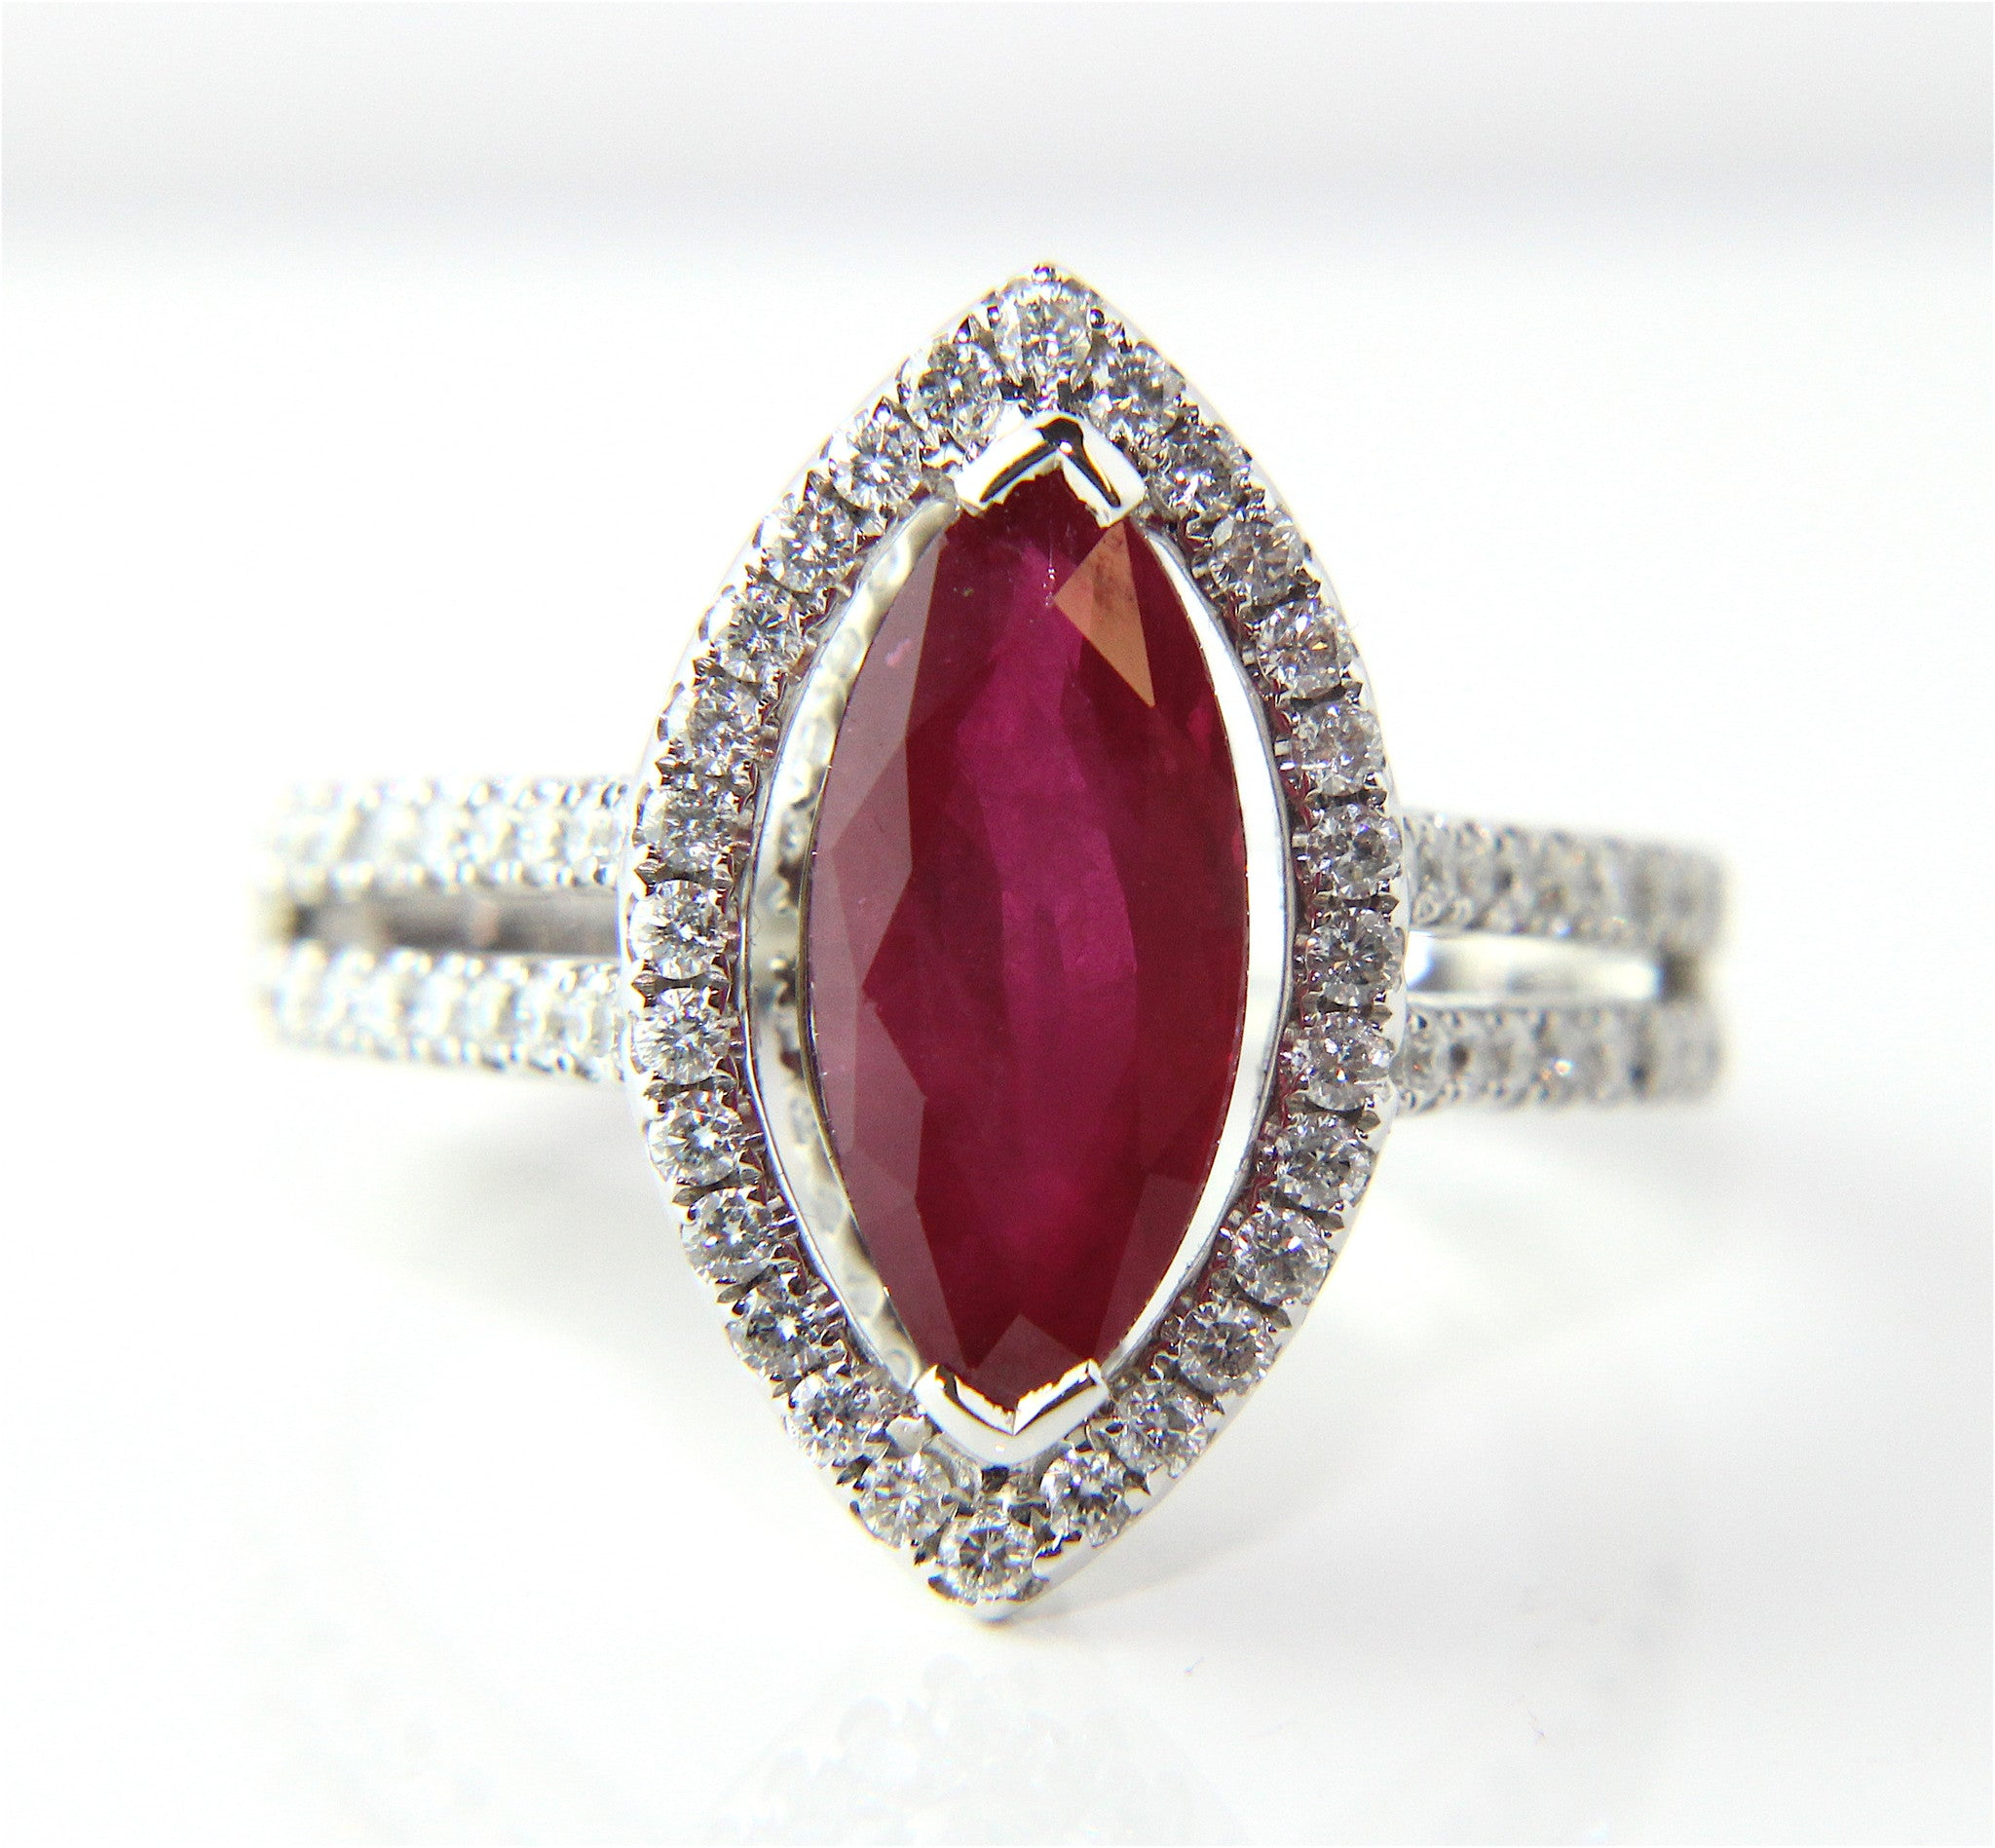 shape rudy side collections oval classic diamond stones rings an pear featuring ring cushion graff ruby red cut with a